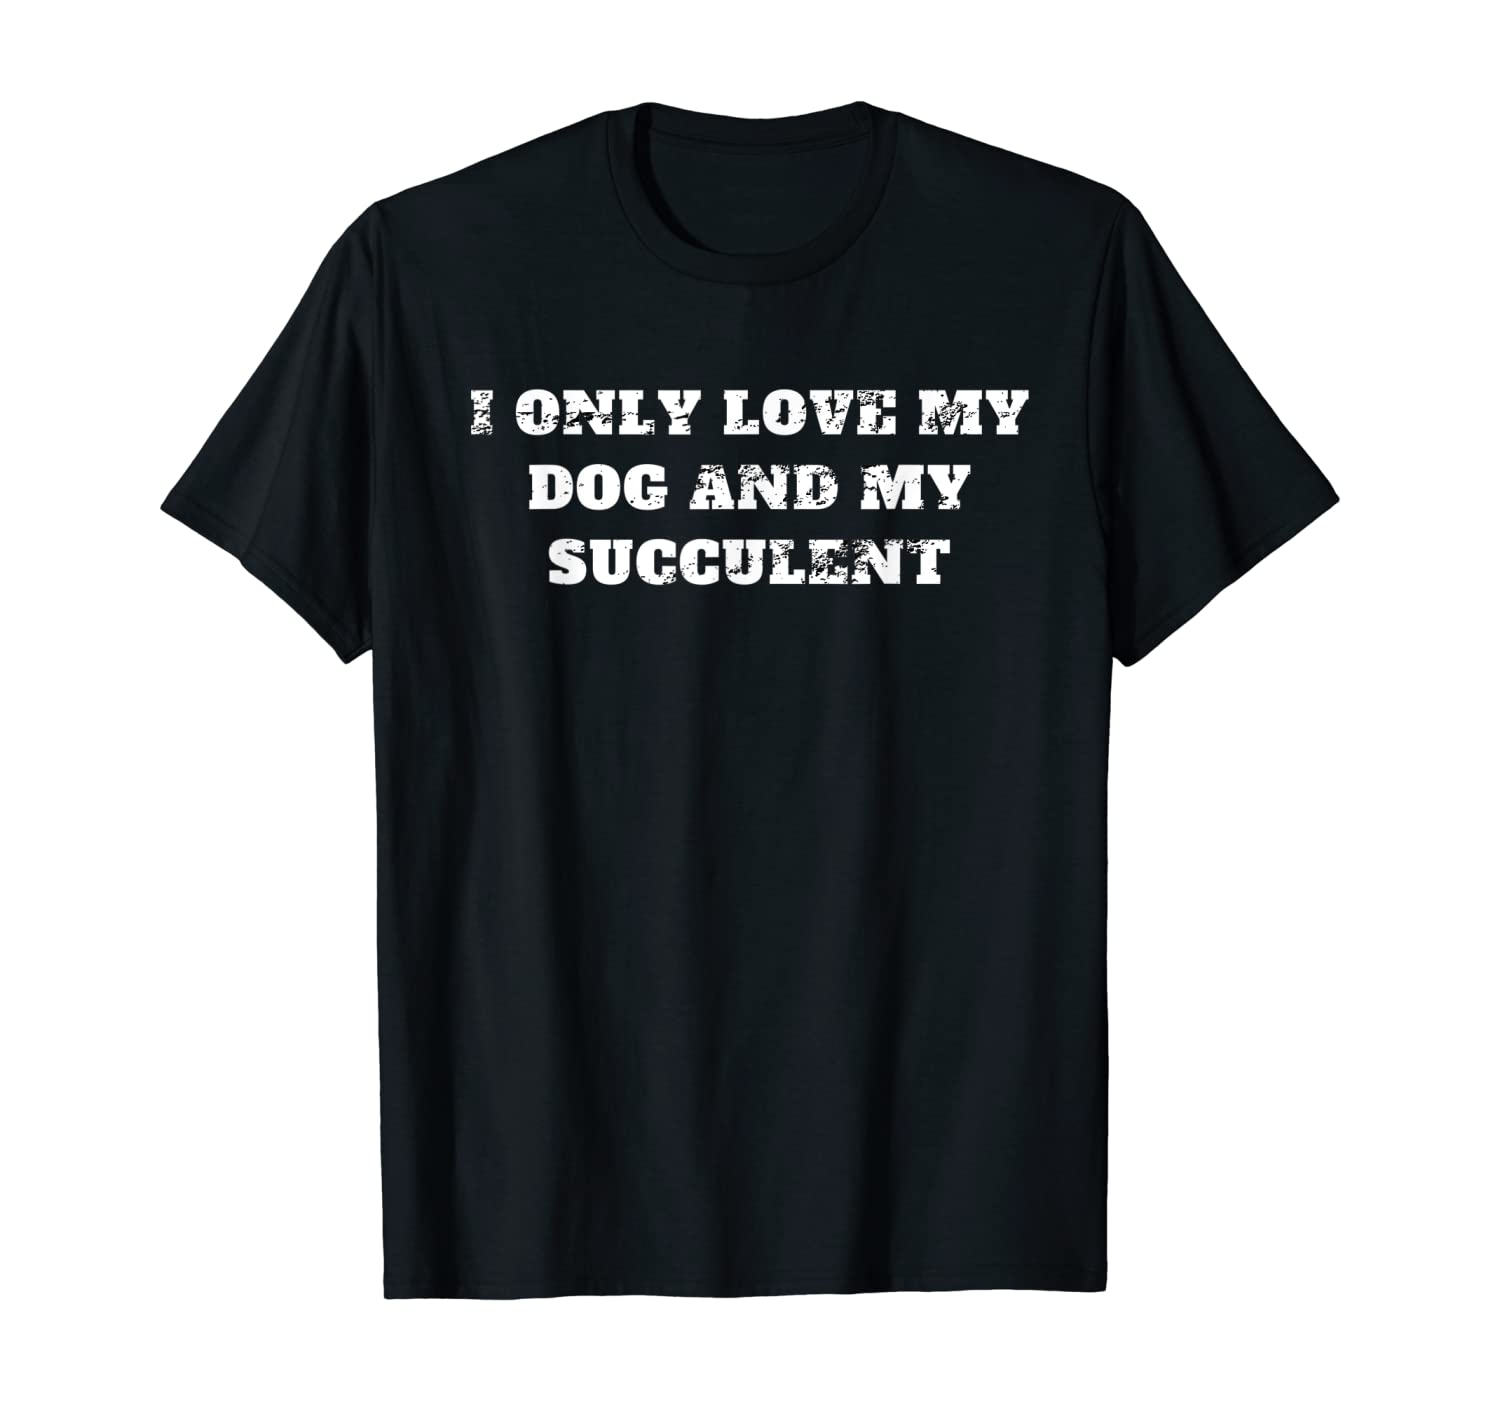 I only love my dog and my succulent retro vintage distressed T-Shirt